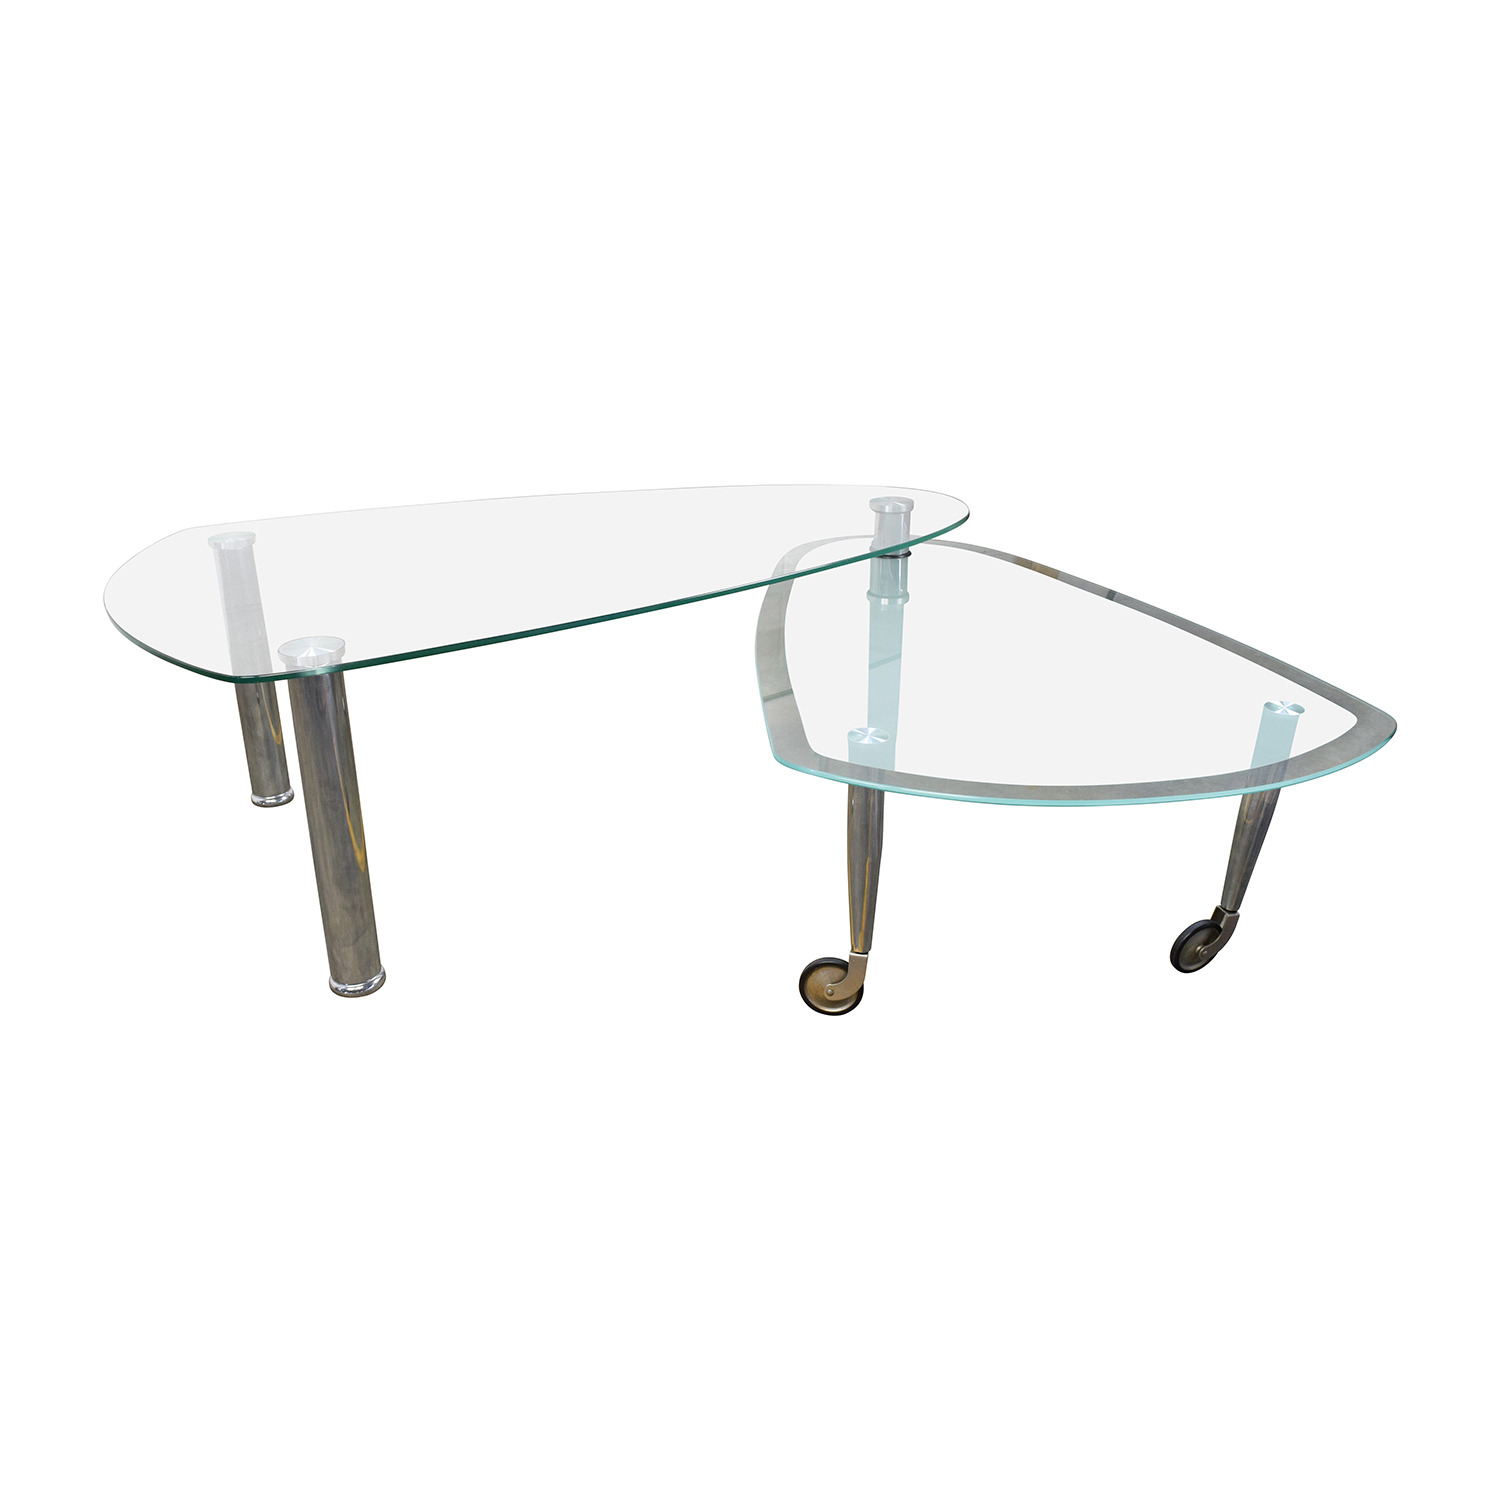 79 off triangular rounded glass and chrome table tables